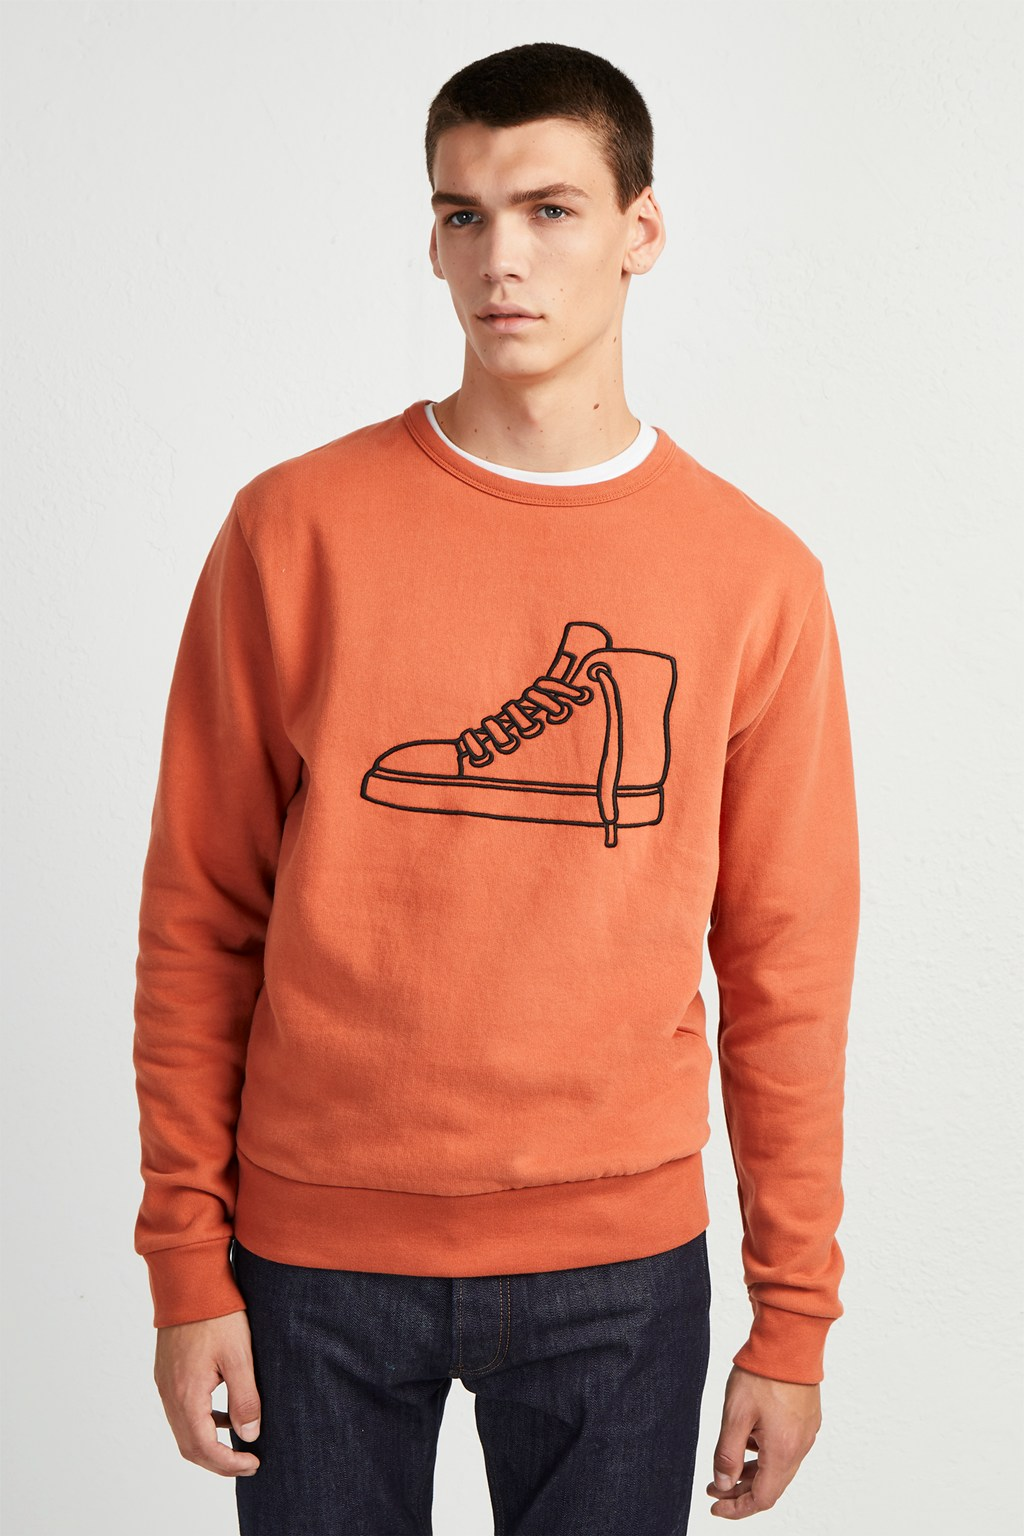 bfa56d2642a Sneaker Embroidered Sweatshirt | Graphic Tees | French Connection Usa